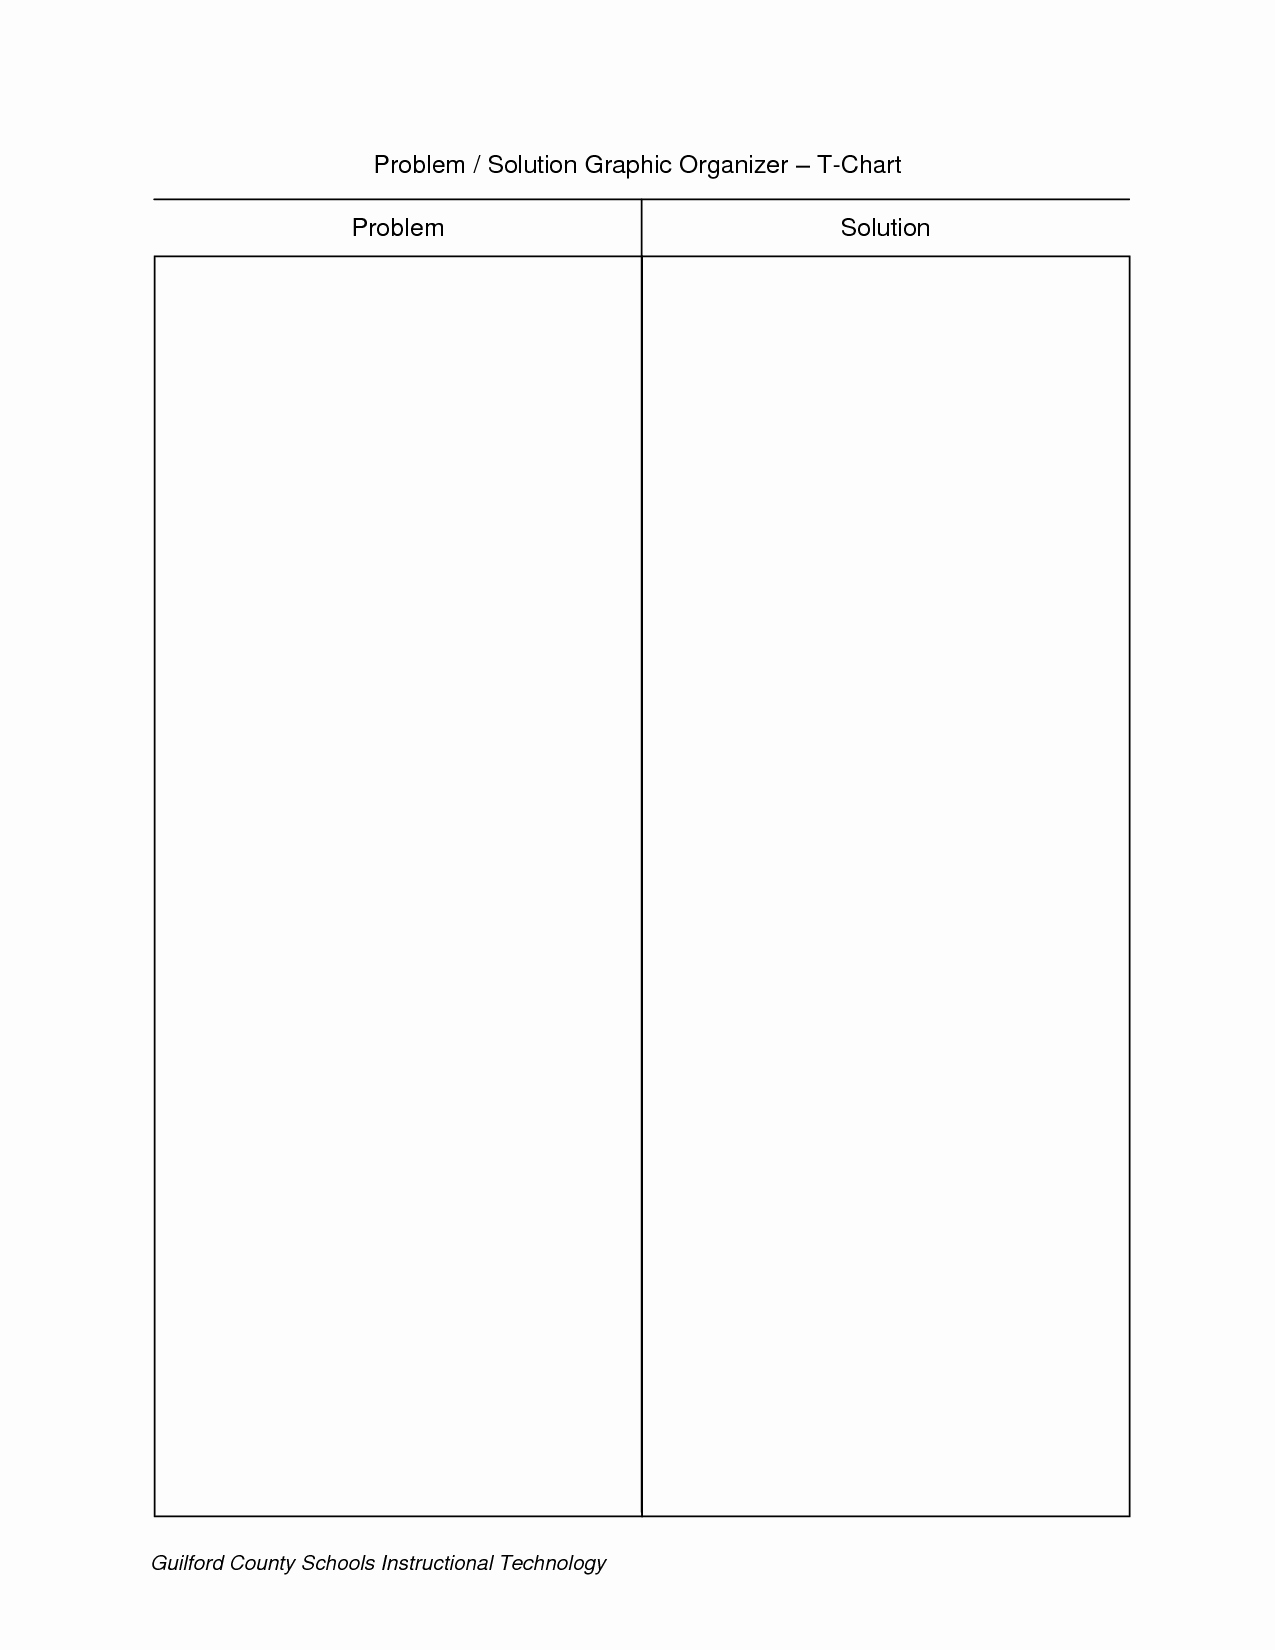 T Chart Template Word Luxury 15 Graphic organizer Templates Microsoft Word